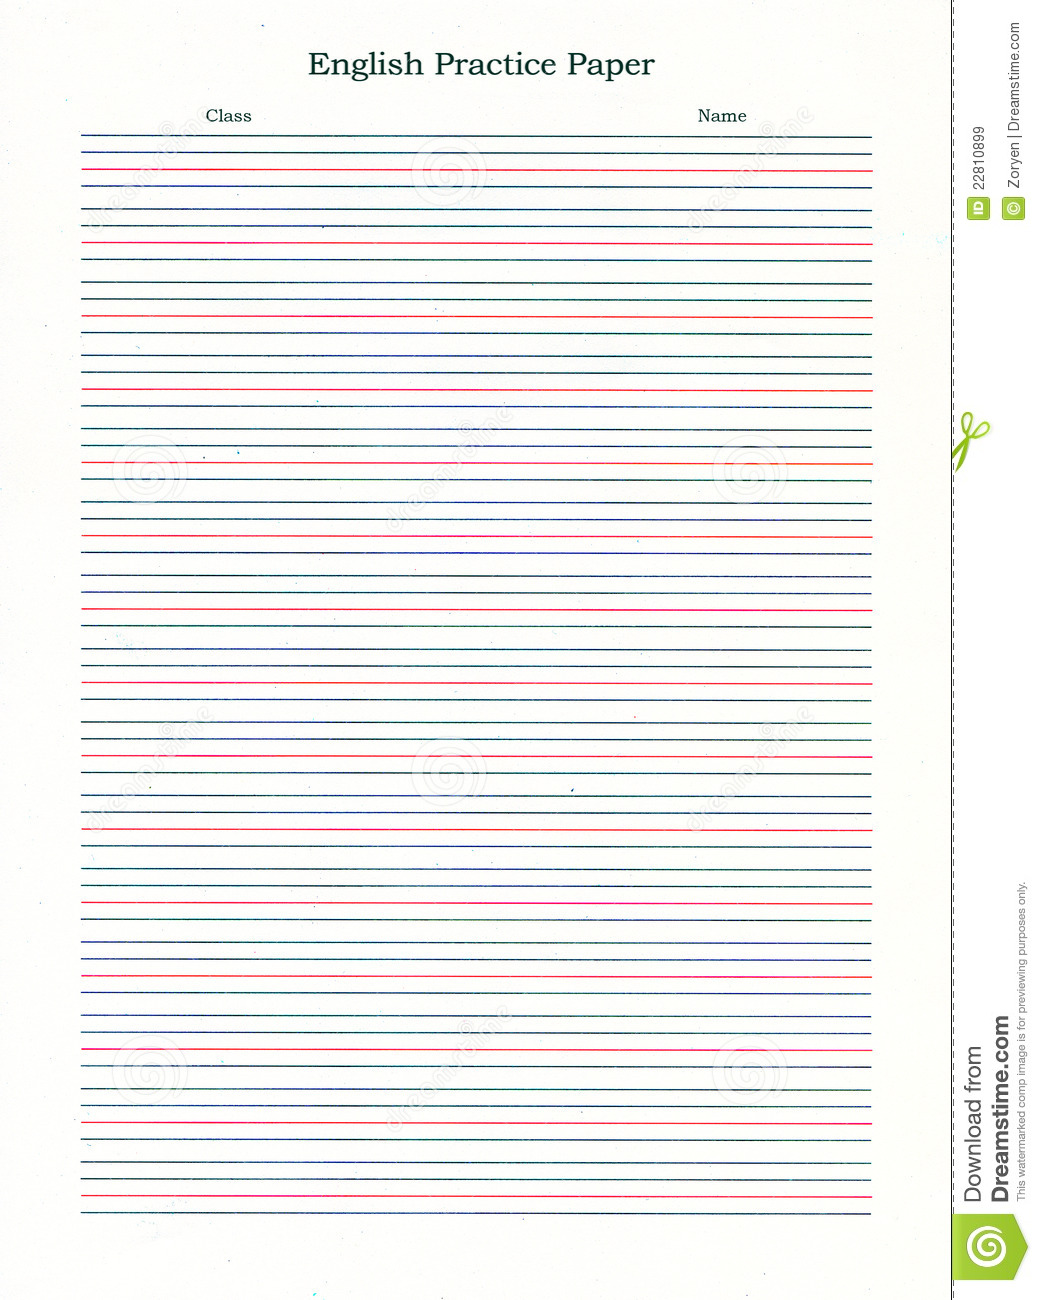 Ruled Writing Paper Stock Image Image Of Guide Ruled Ruled Writing Paper.  Christmas Writing Paper For Kids Printable Template